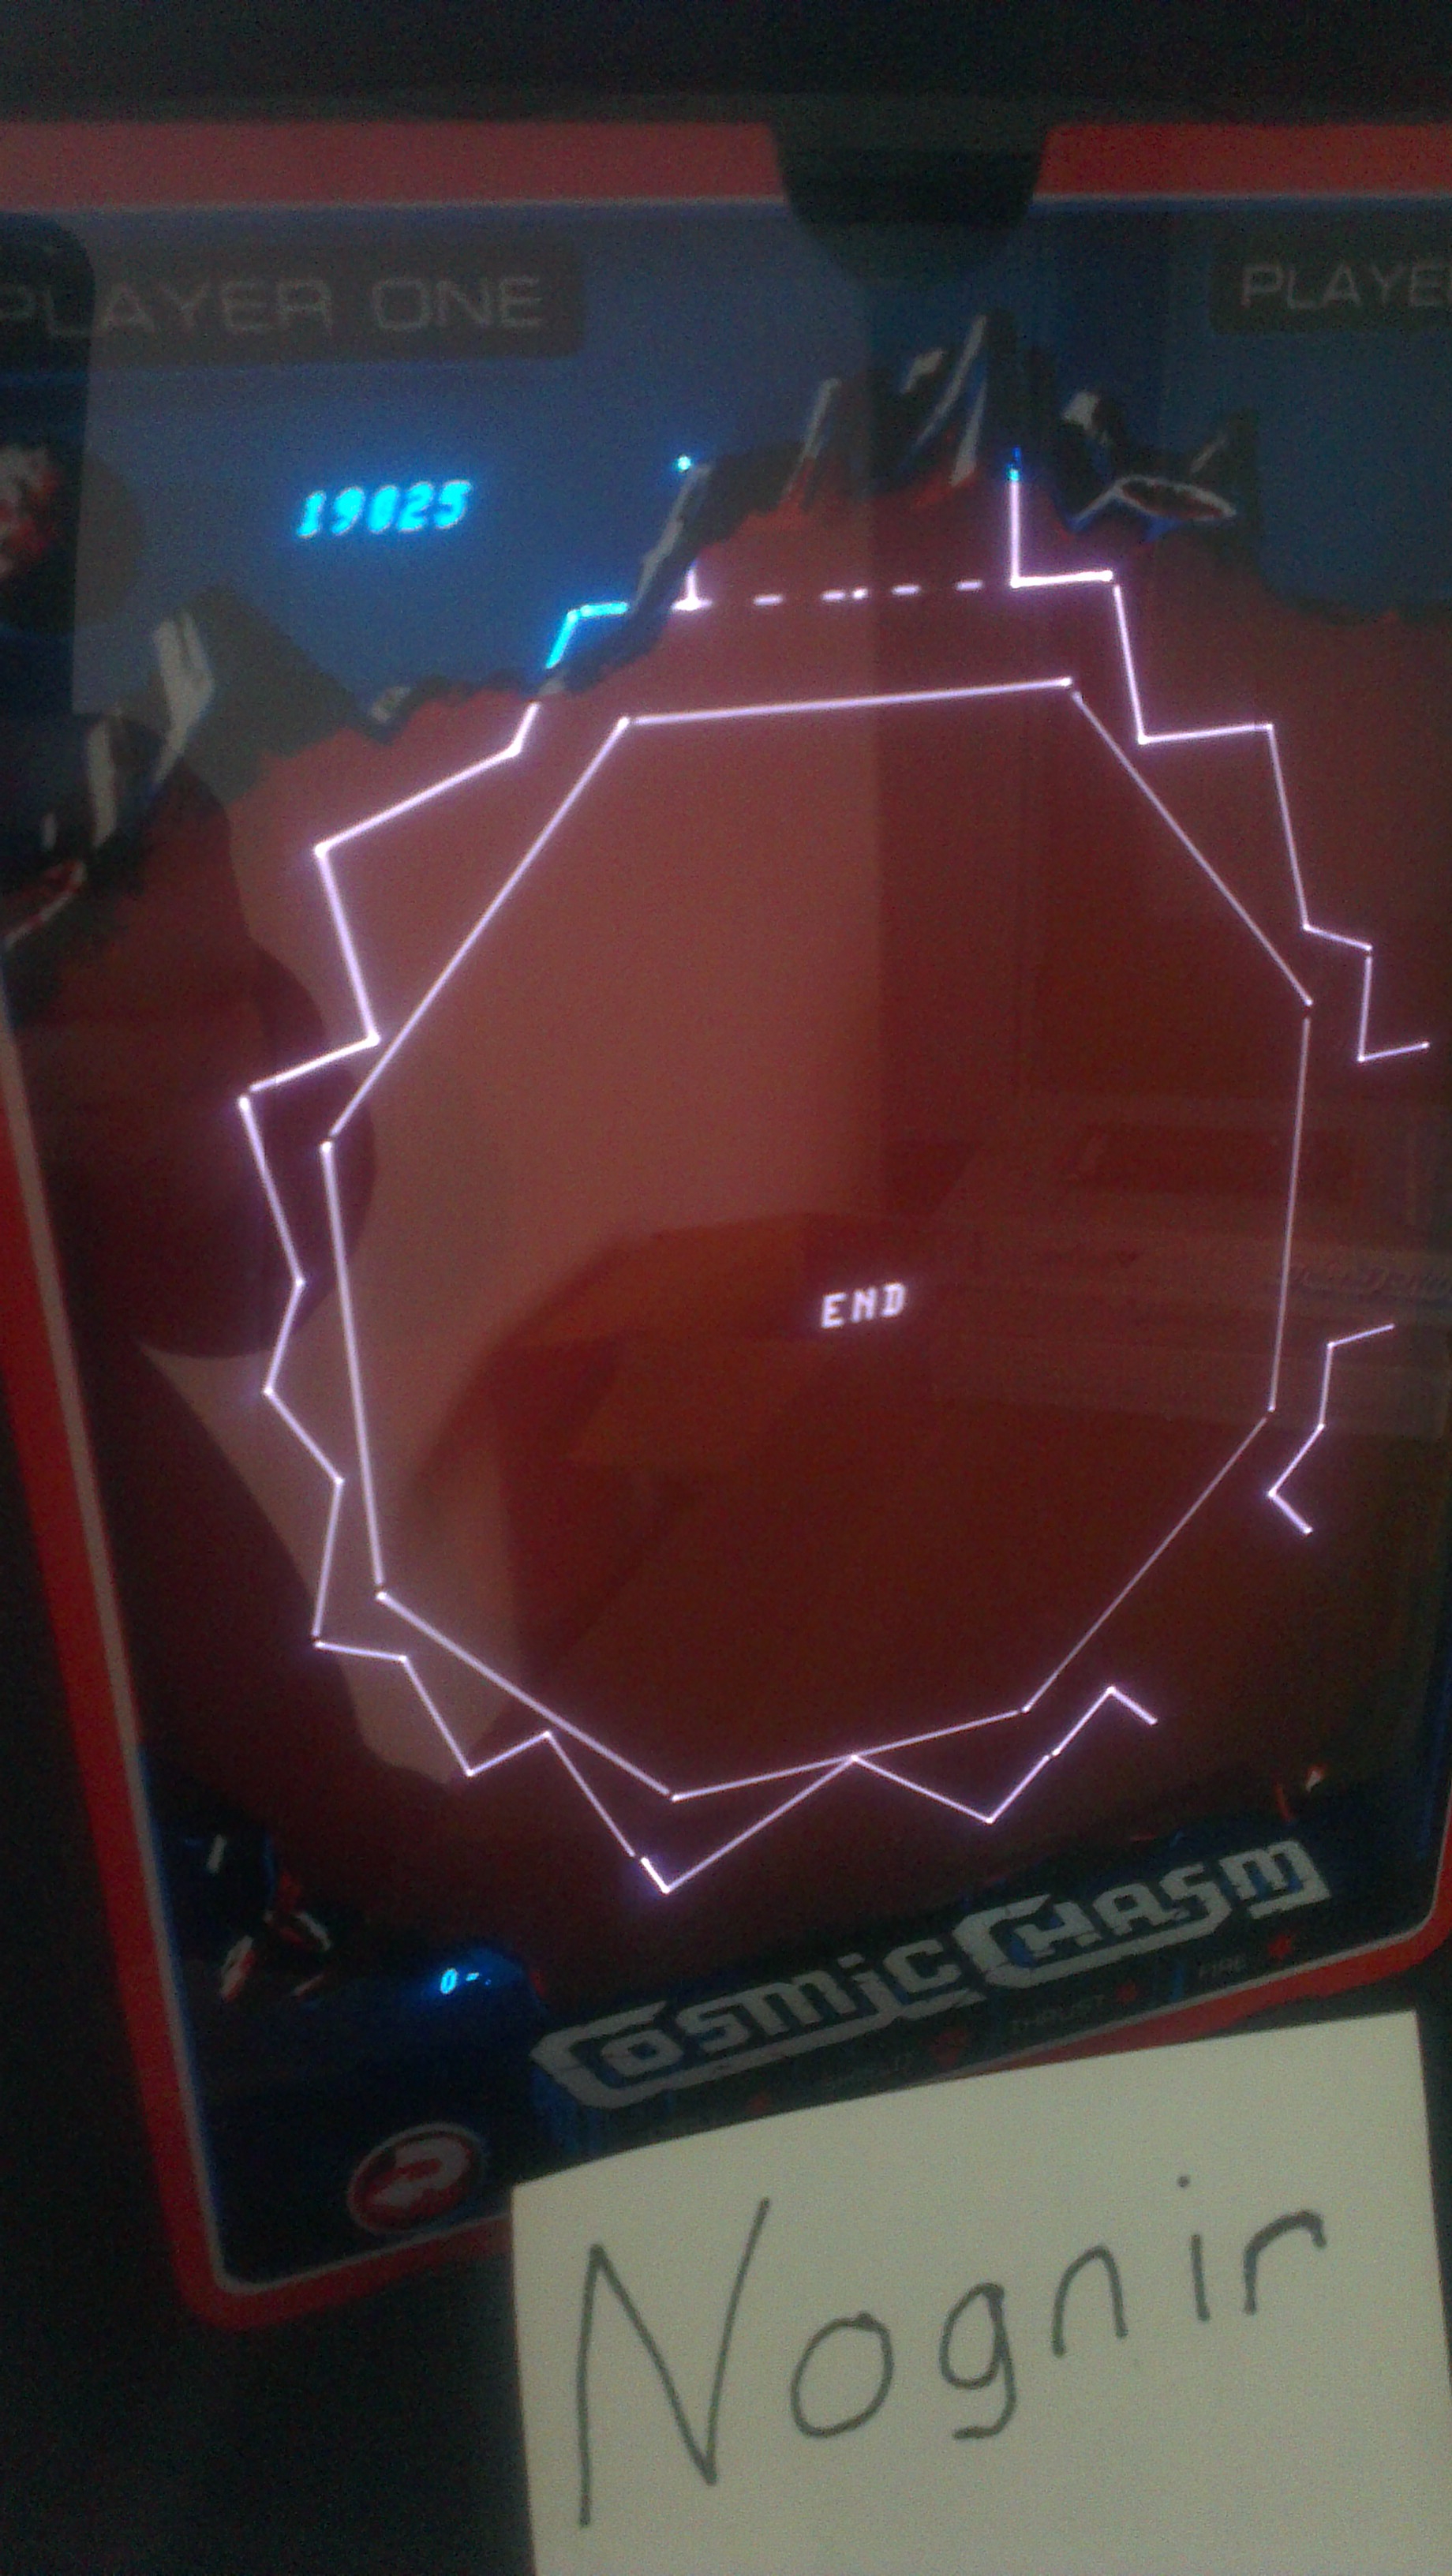 Nognir: Cosmic Chasm (Vectrex) 19,025 points on 2014-05-24 05:19:06